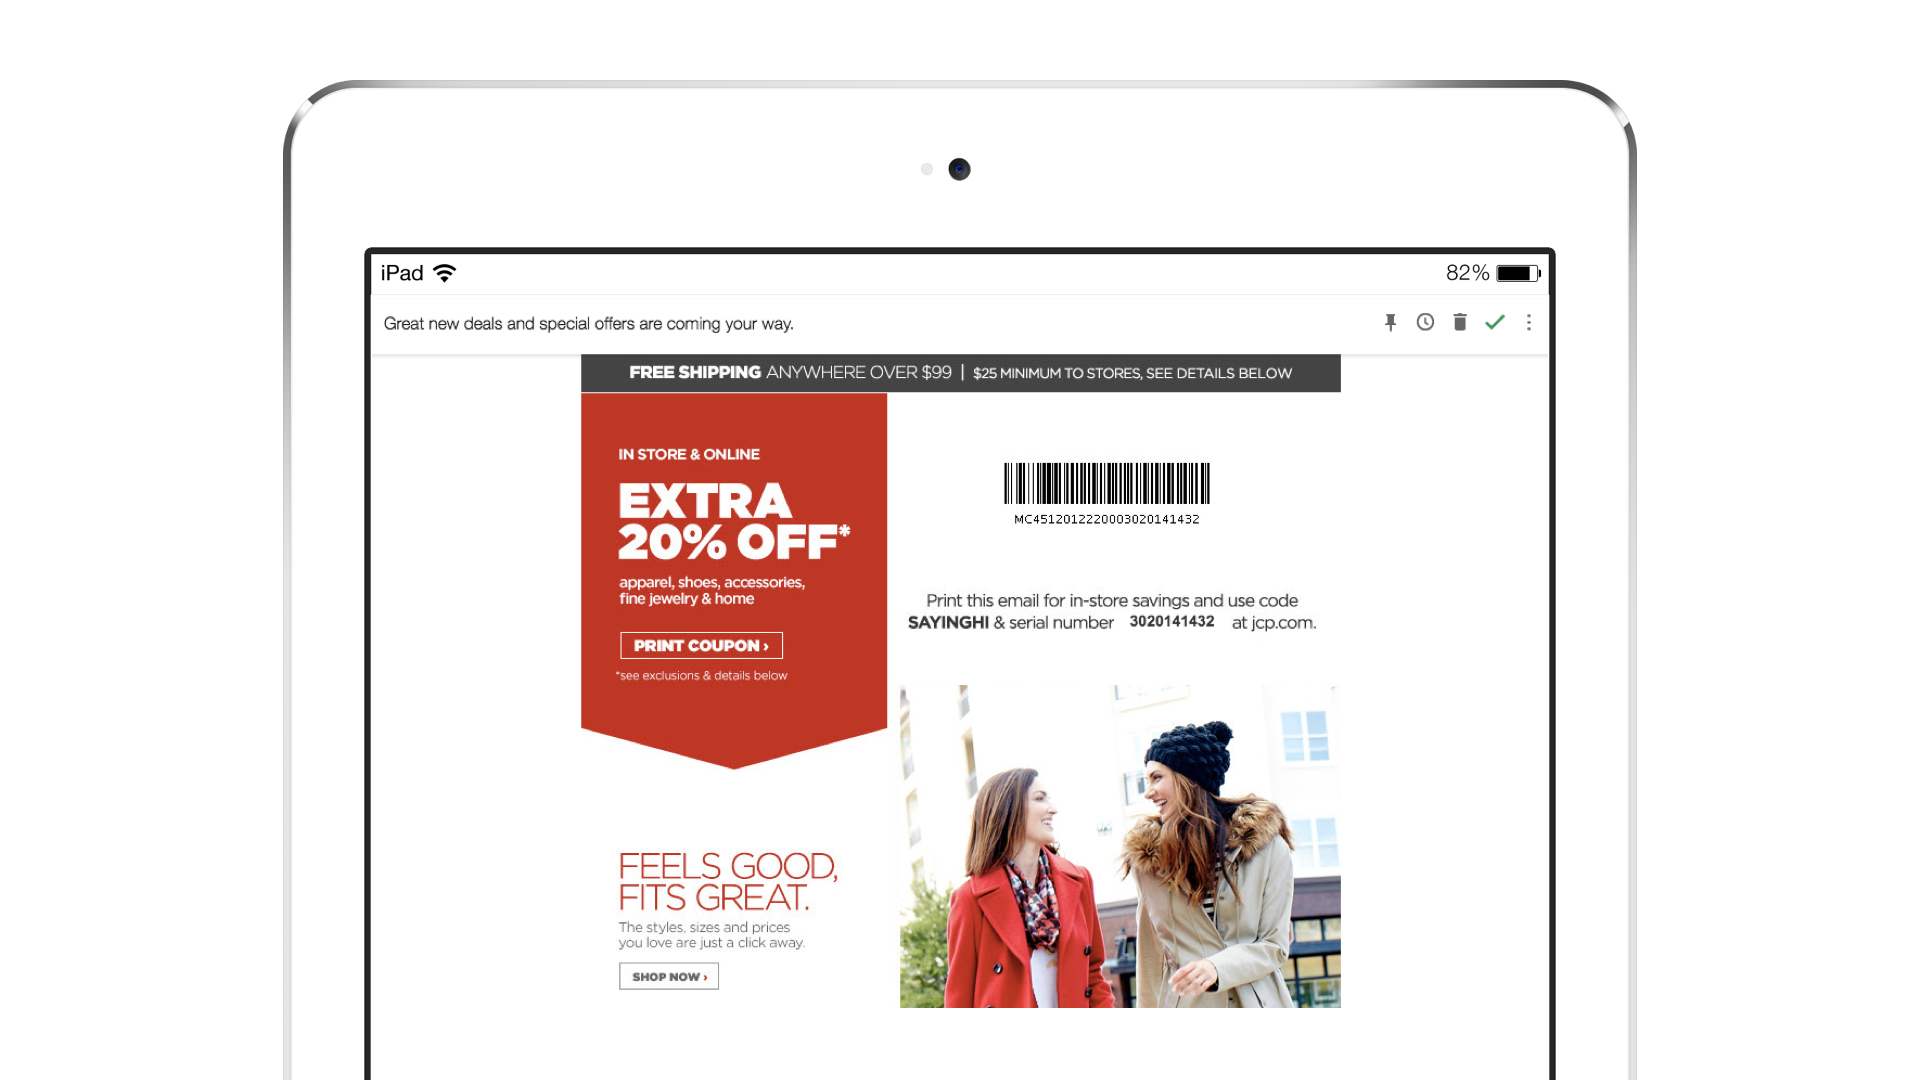 J.C. Penney welcome message